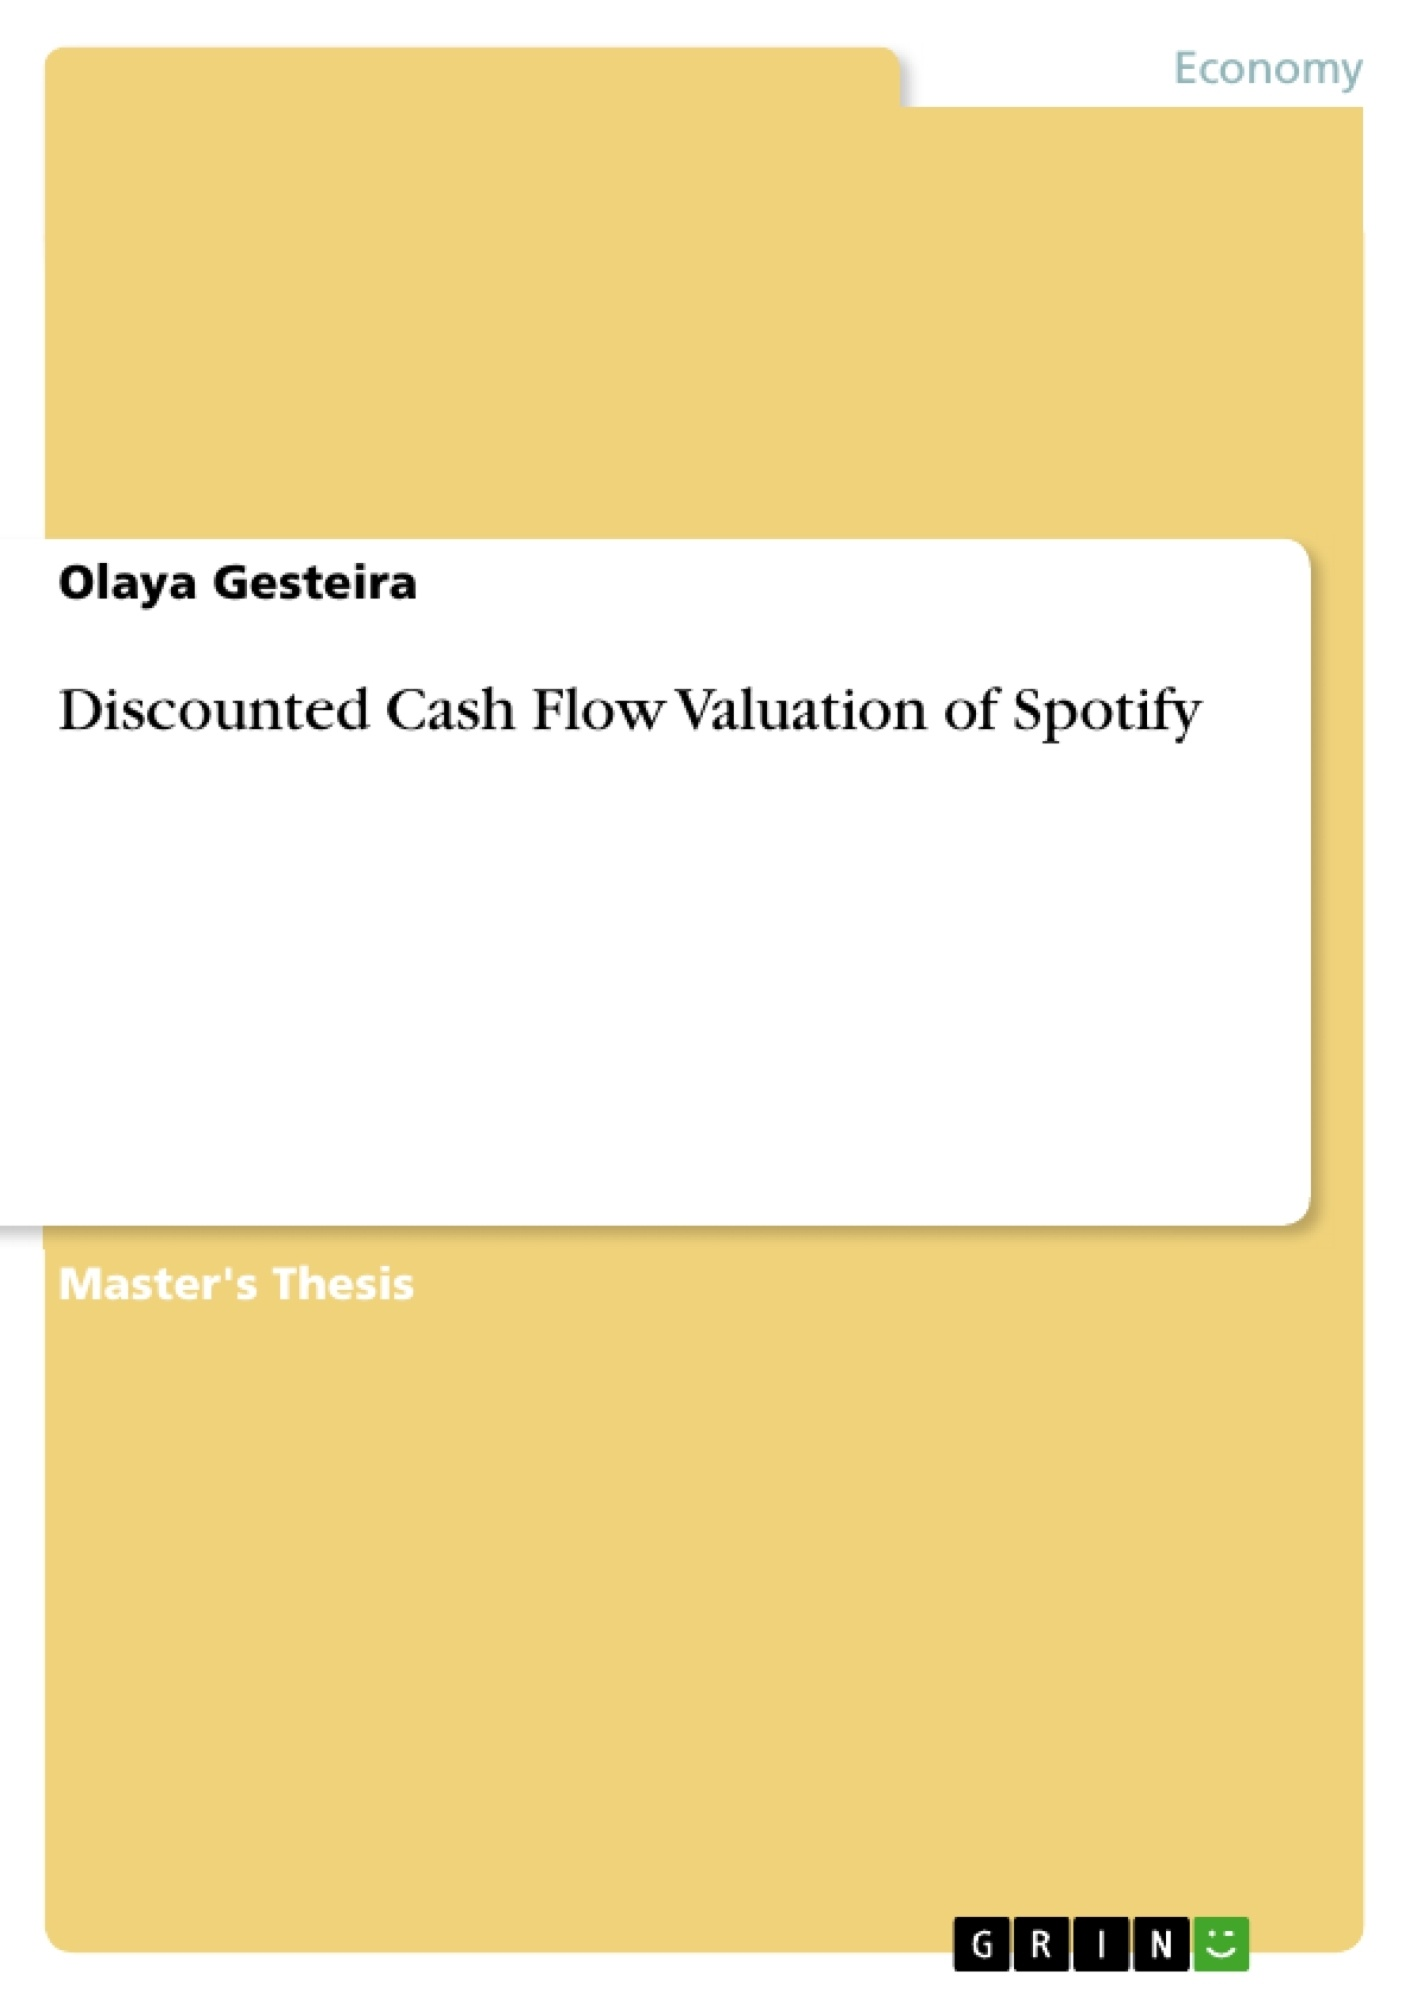 Title: Discounted Cash Flow Valuation of Spotify